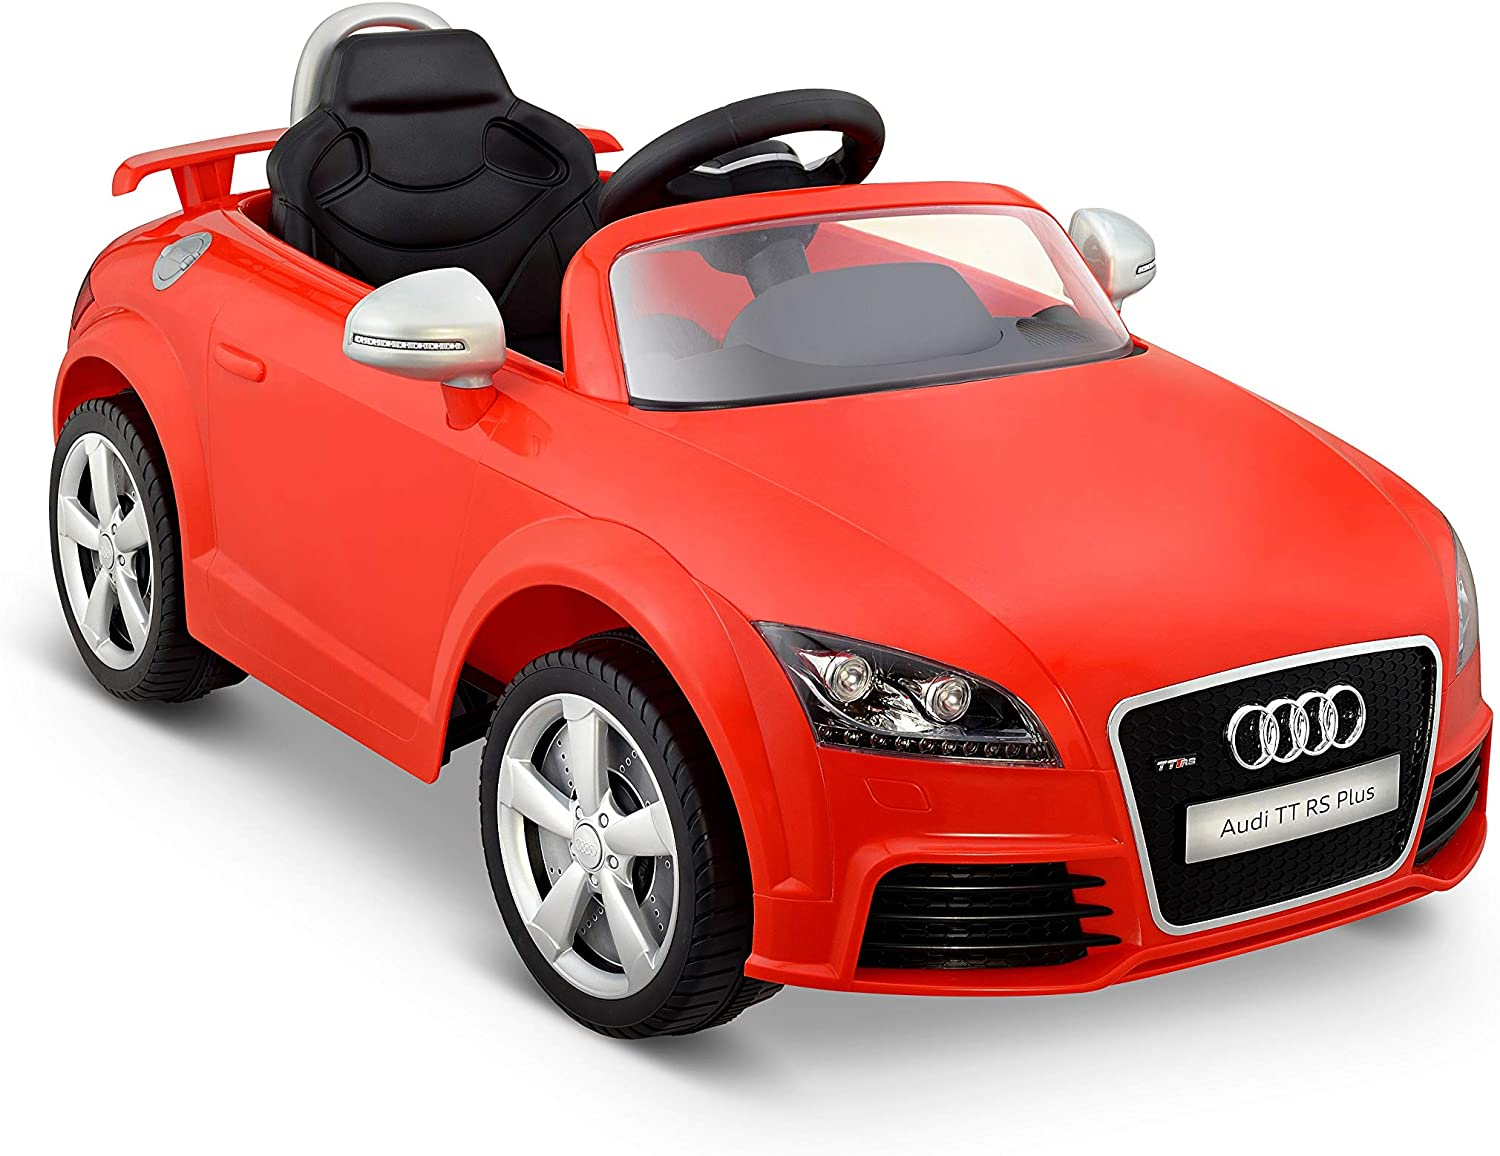 Kid Motorz Audi Tt Rs Red One Seater Car, Red